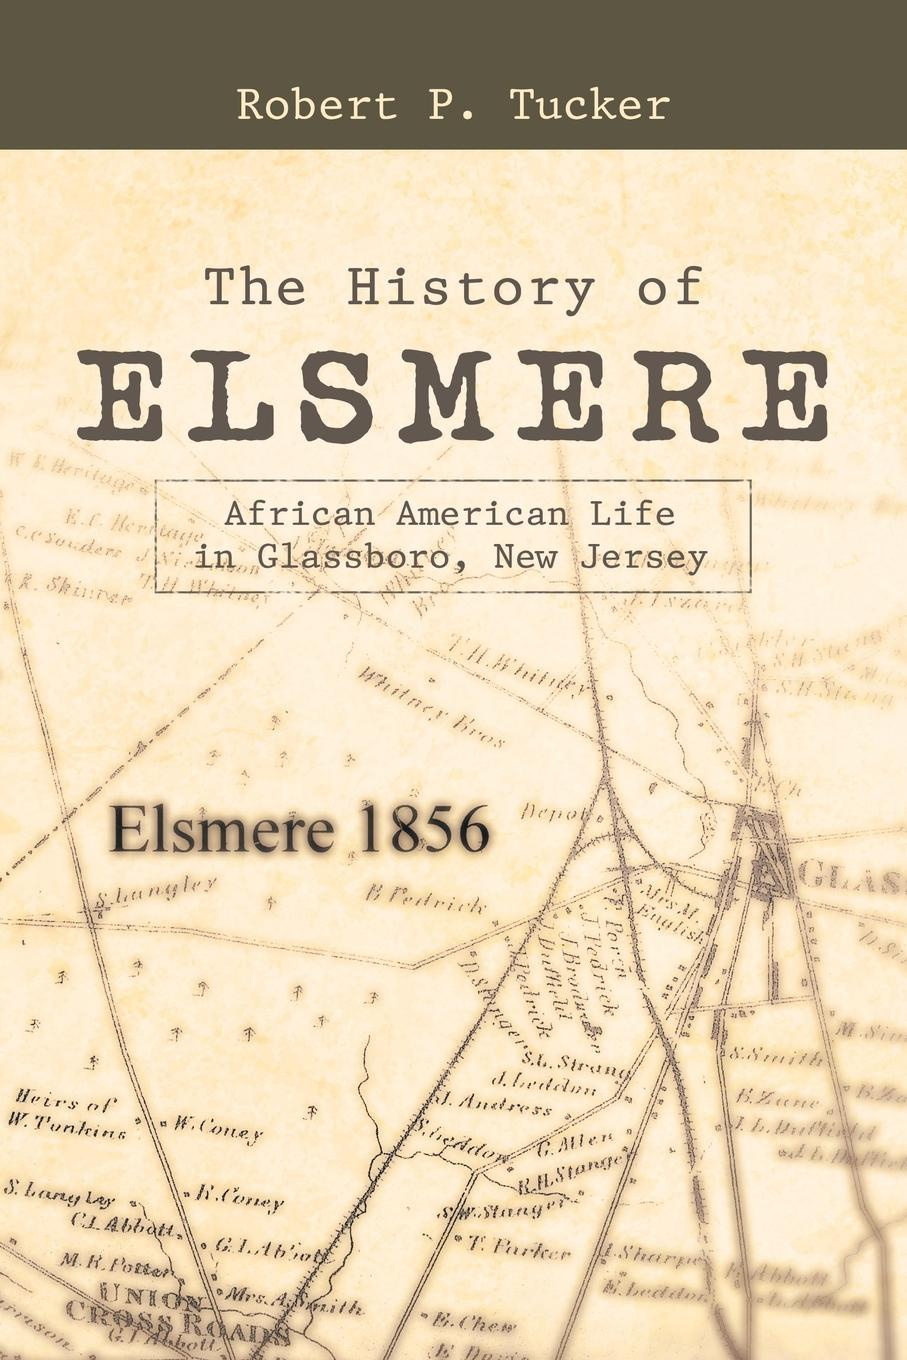 Robert P. Tucker The History of Elsmere. African American Life in Glassboro, New Jersey charles richard tuttle the centennial northwest an illustrated history of the northwest being a full and complete civil political and military history of this great section of the united states from its earliest settlement to the present time